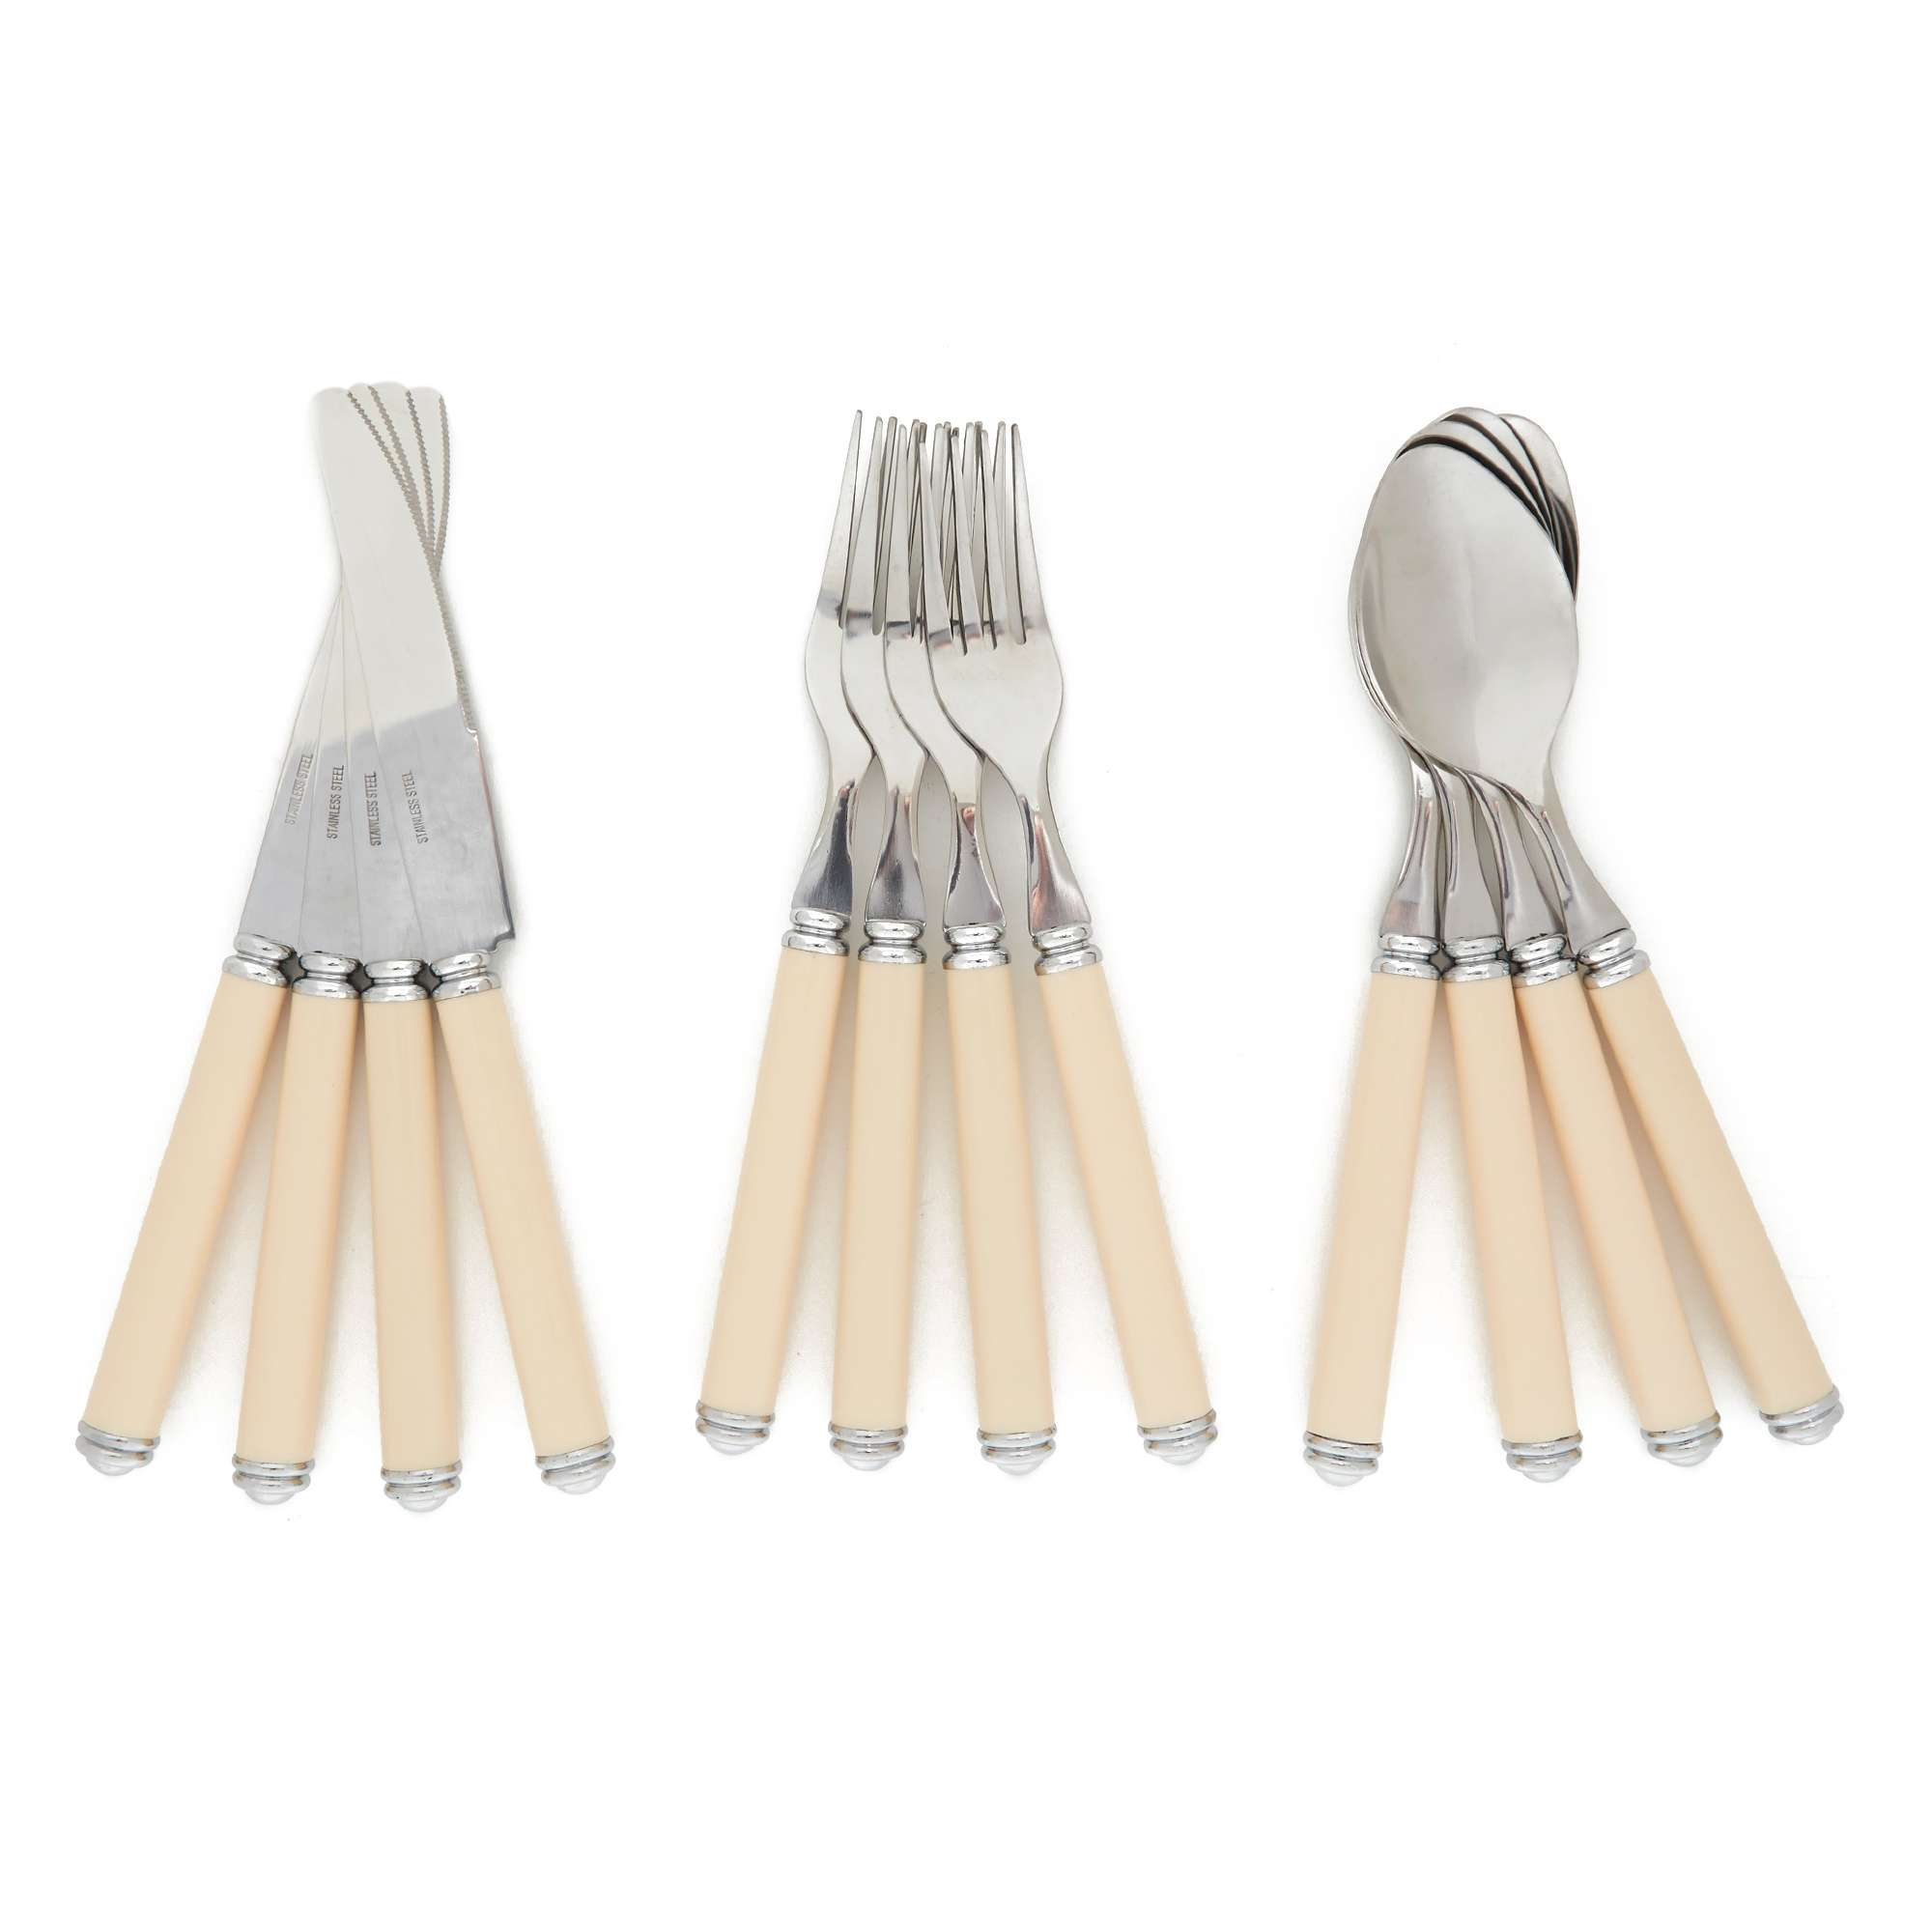 EUROKAMP 4 Person Cutlery Set